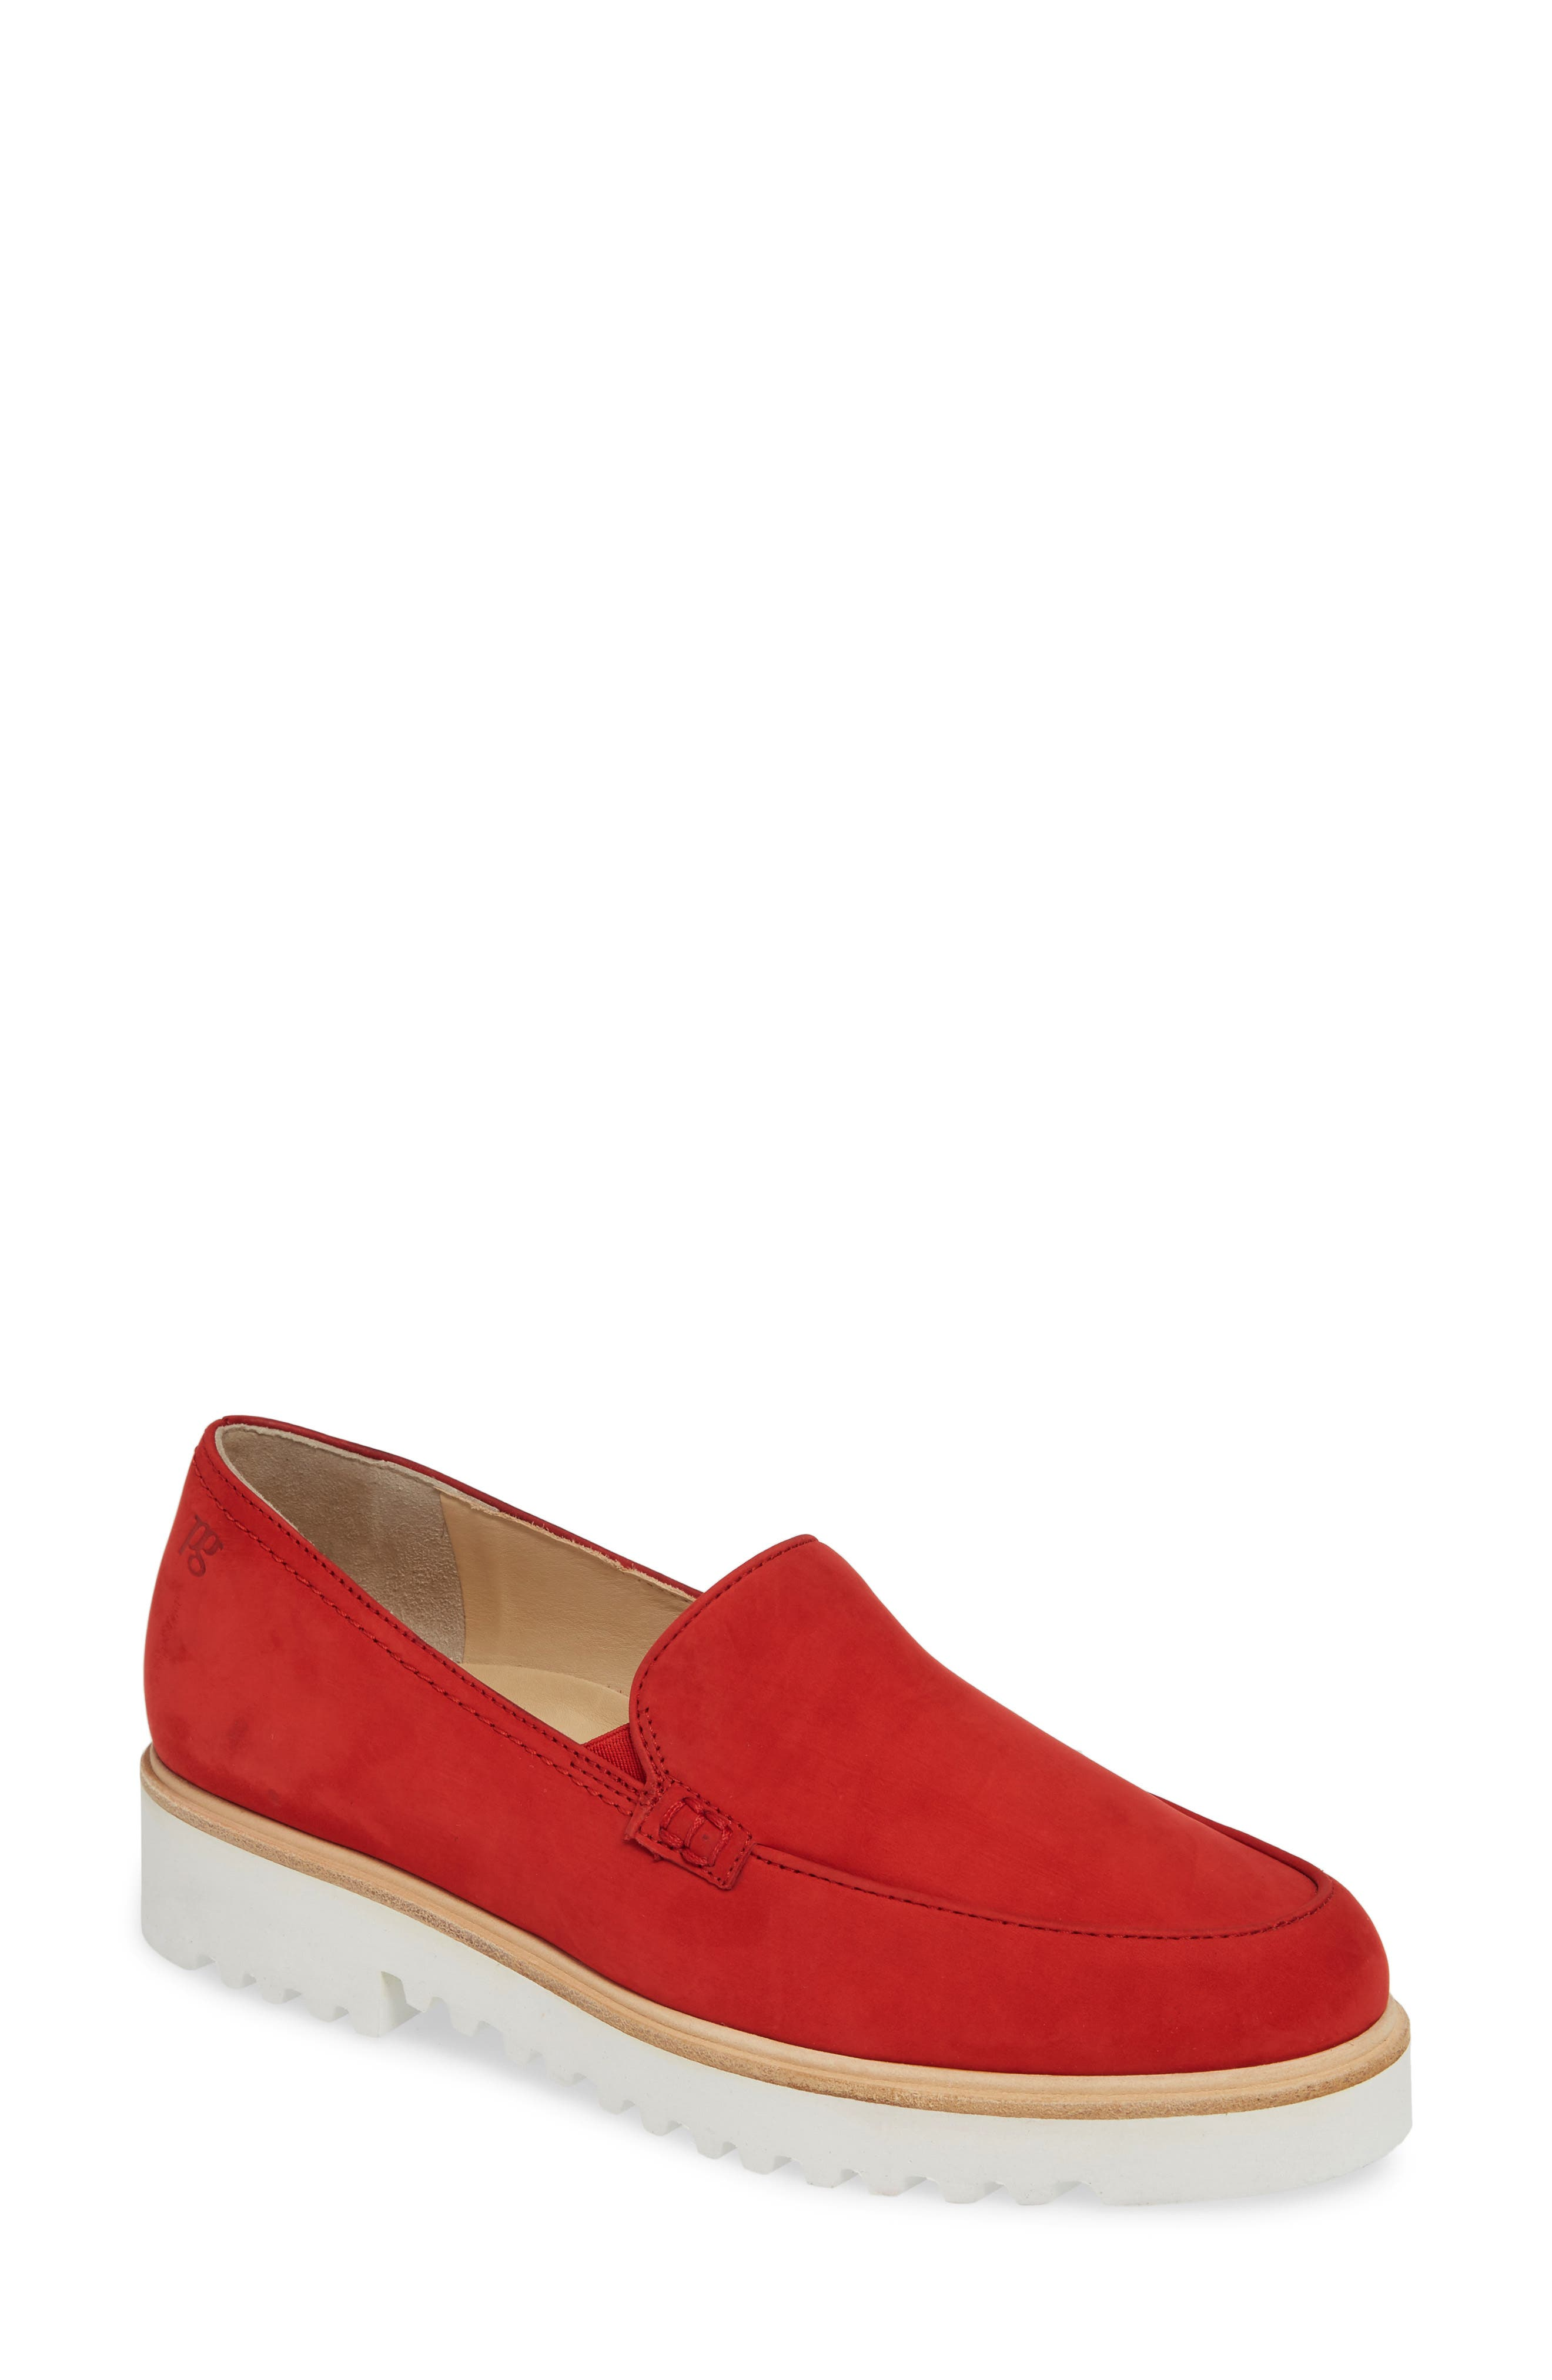 Paul Green Tripoli Loafer, US/ 5.5UK - Red